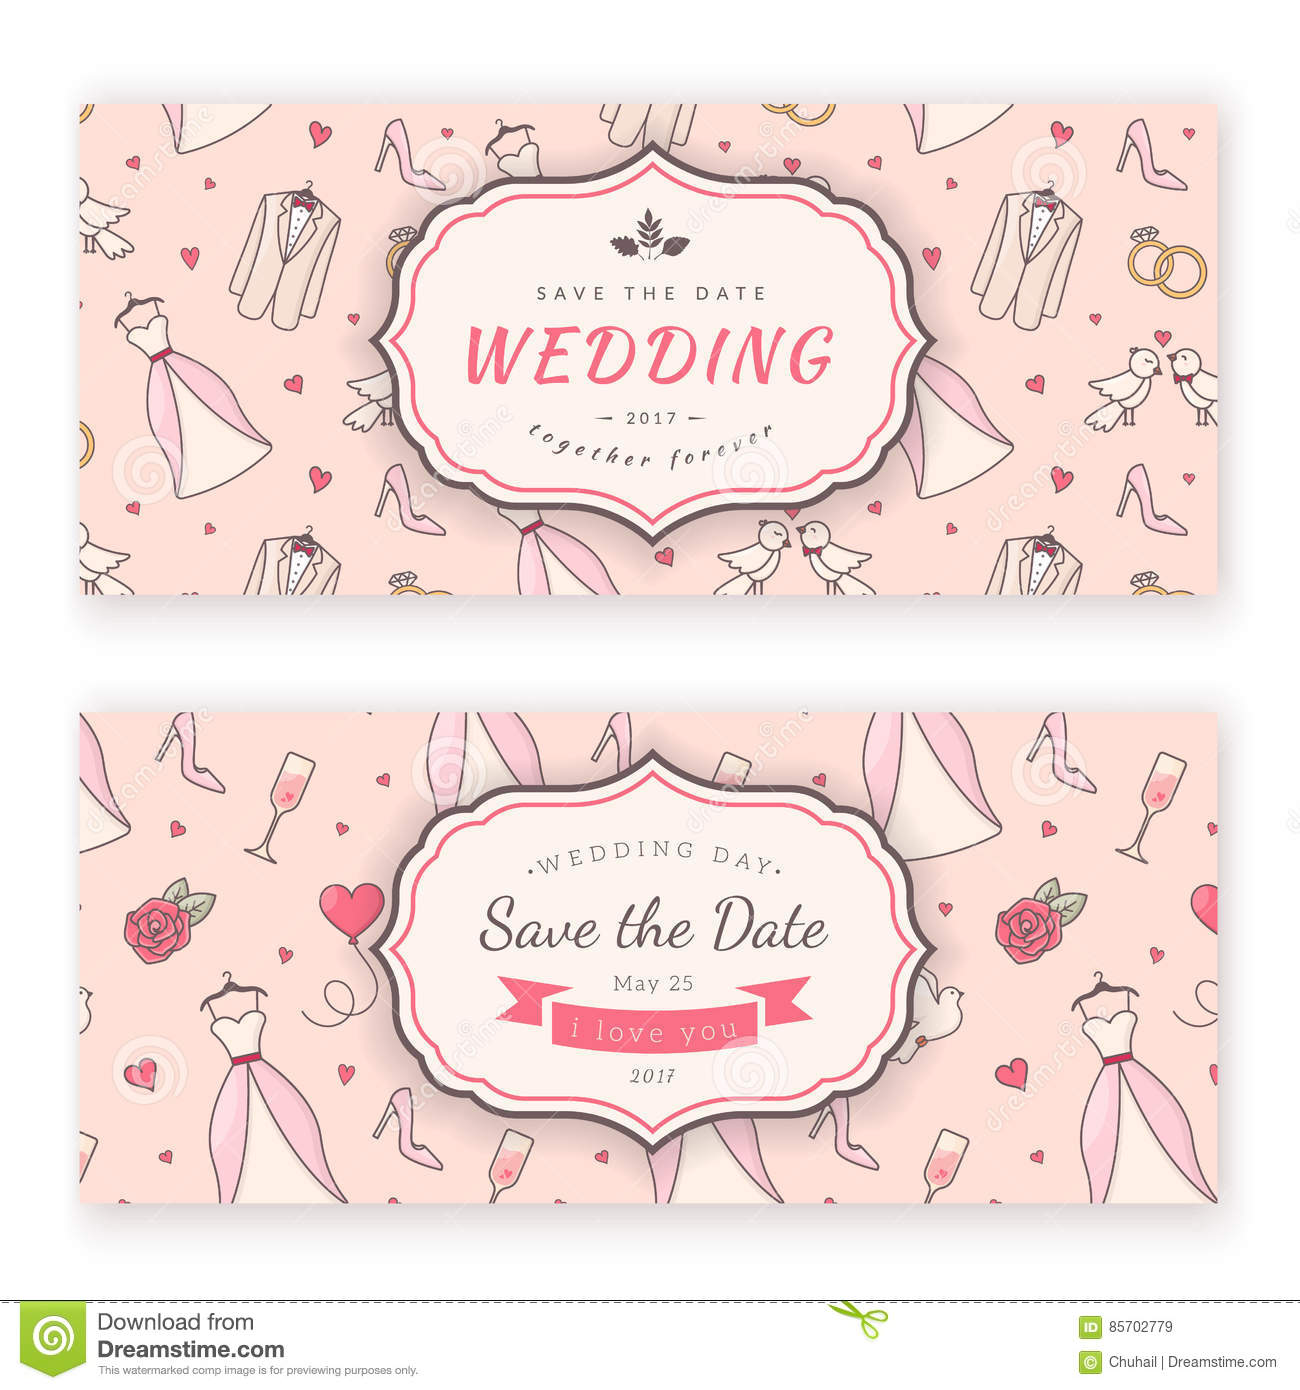 Wedding banner template. stock vector. Illustration of passion ...